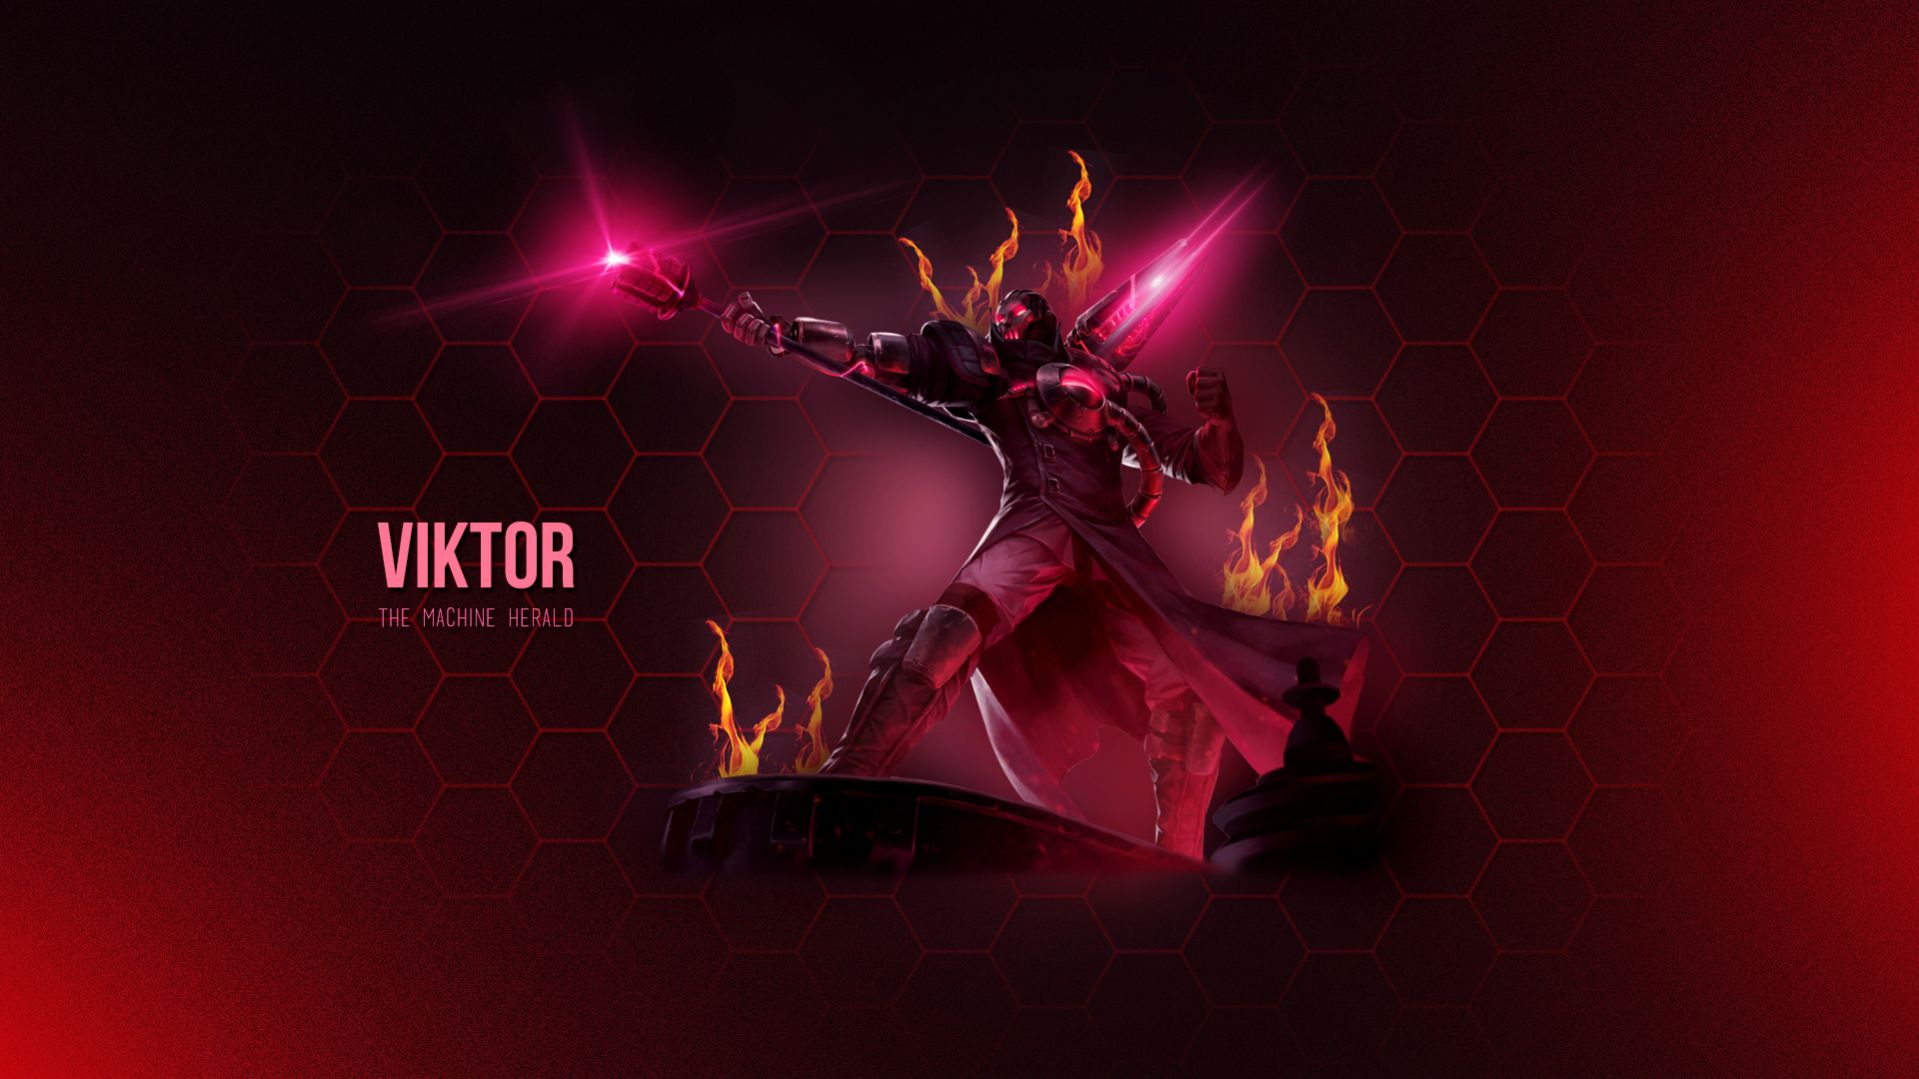 Creator Viktor wallpaper